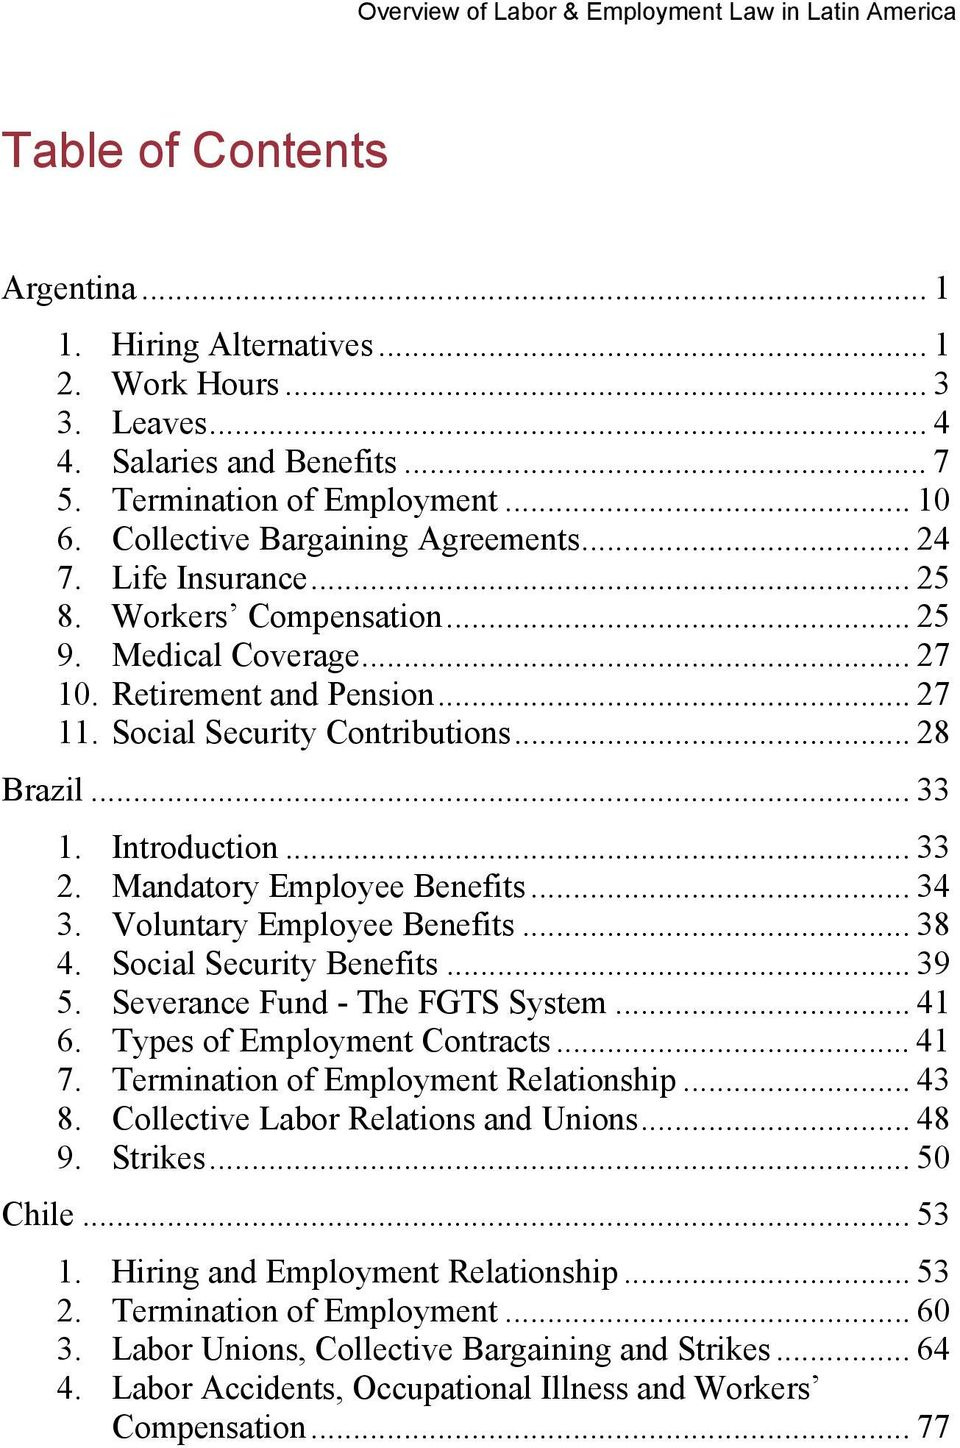 Overview of Labor & Employment Law in Latin America - PDF